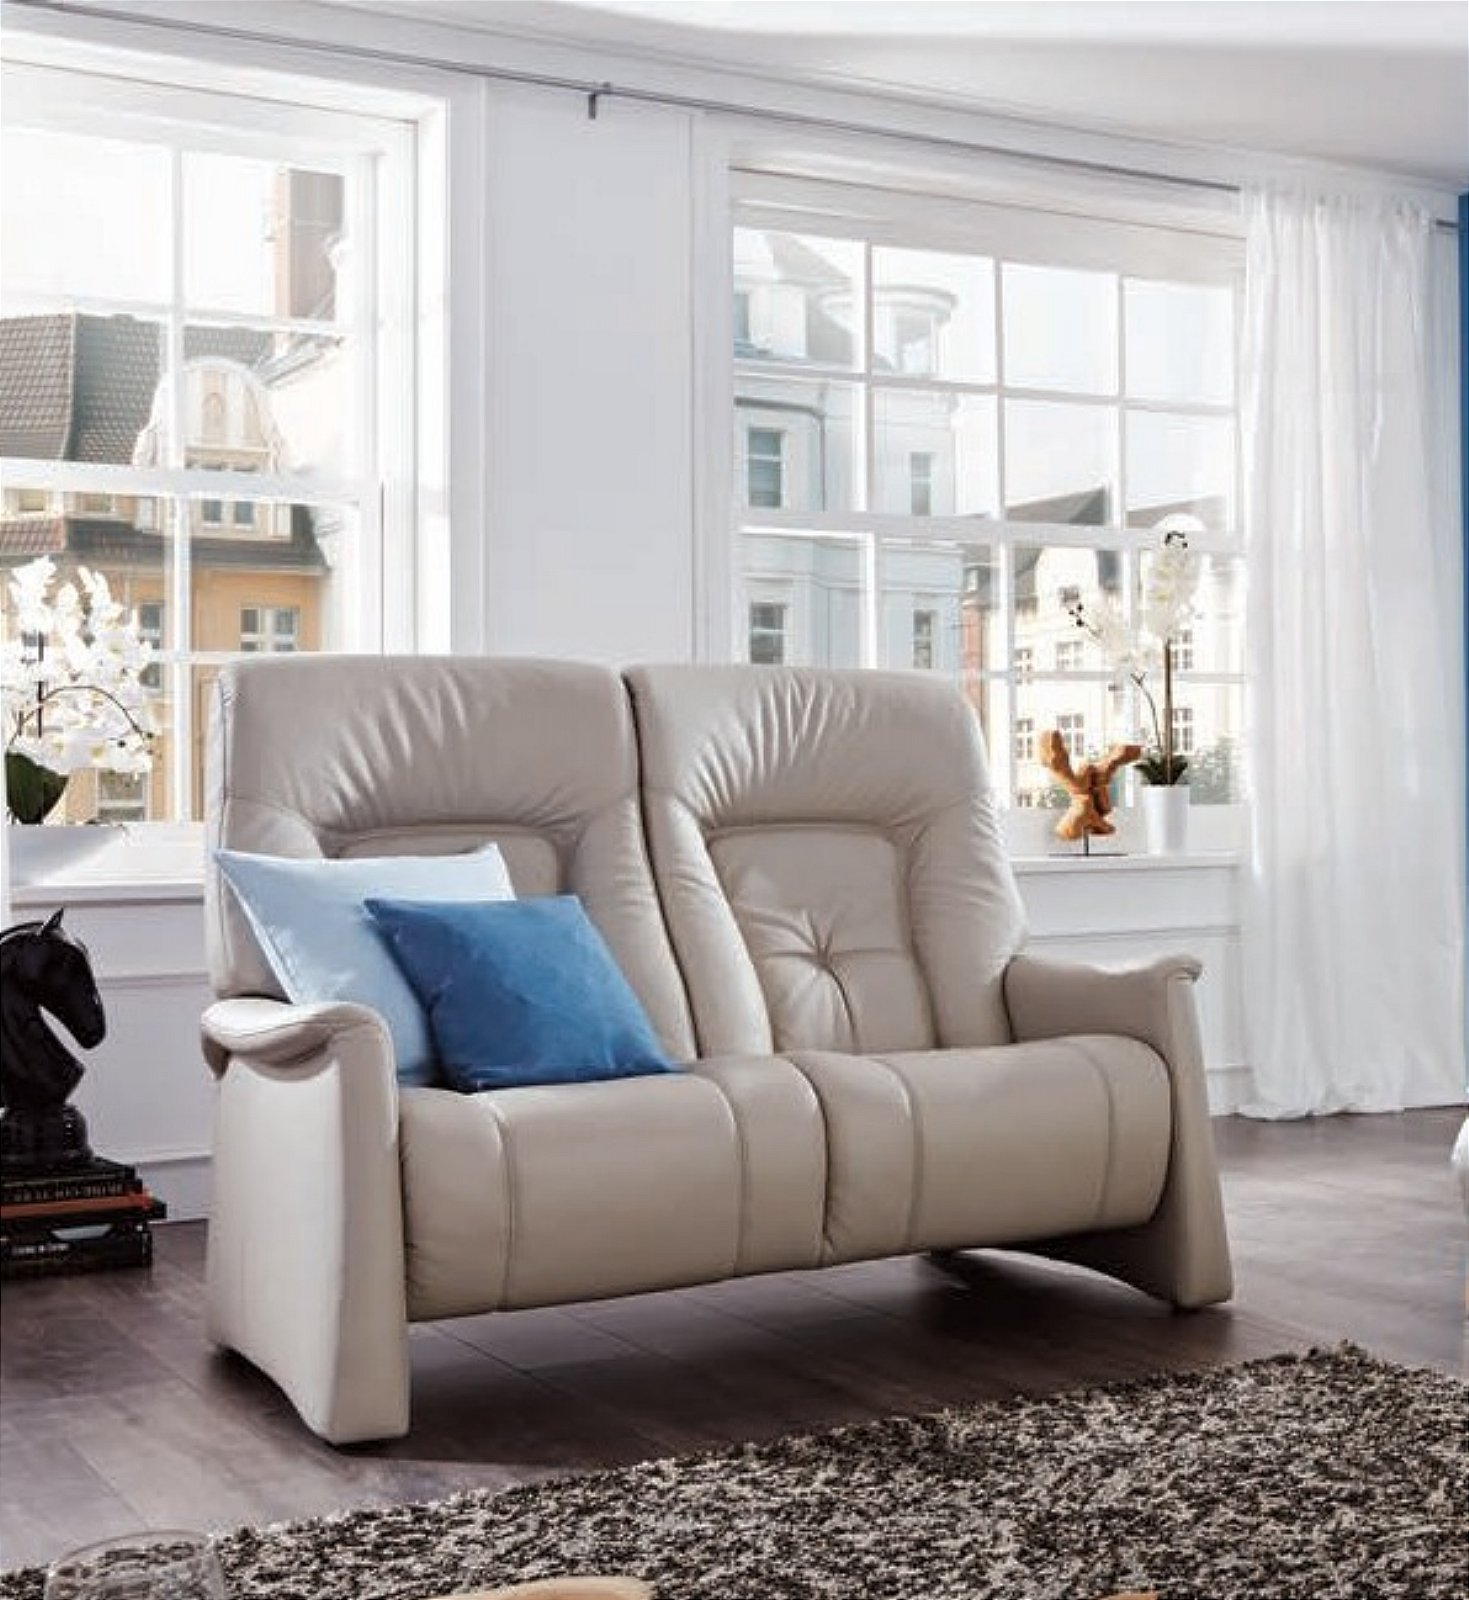 Cumuly Themse 2 Seater Leather Sofa - 4798